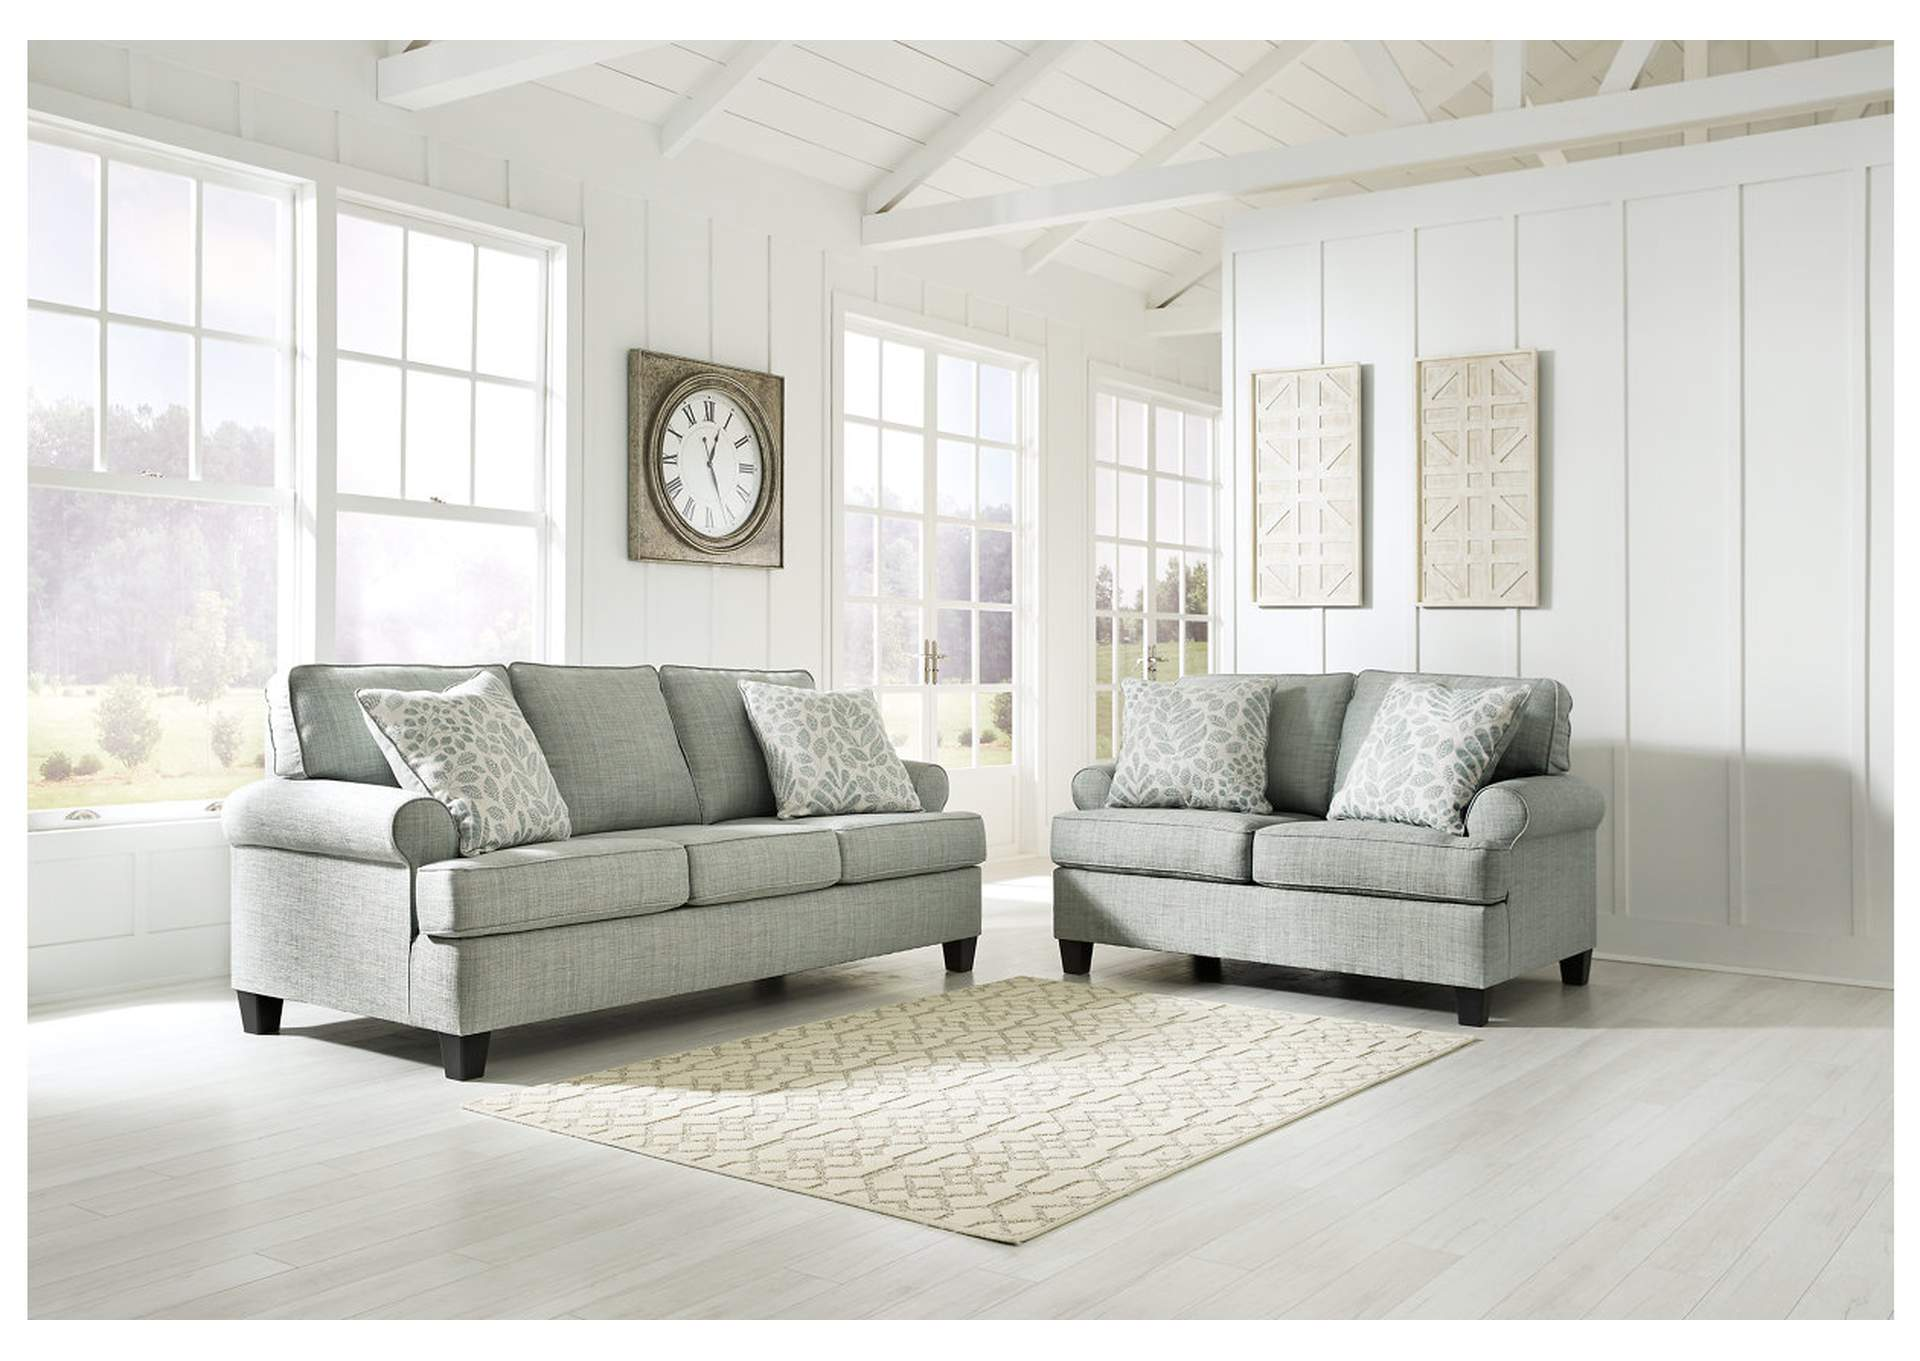 Kilarney Mist Sofa and Loveseat,Signature Design By Ashley